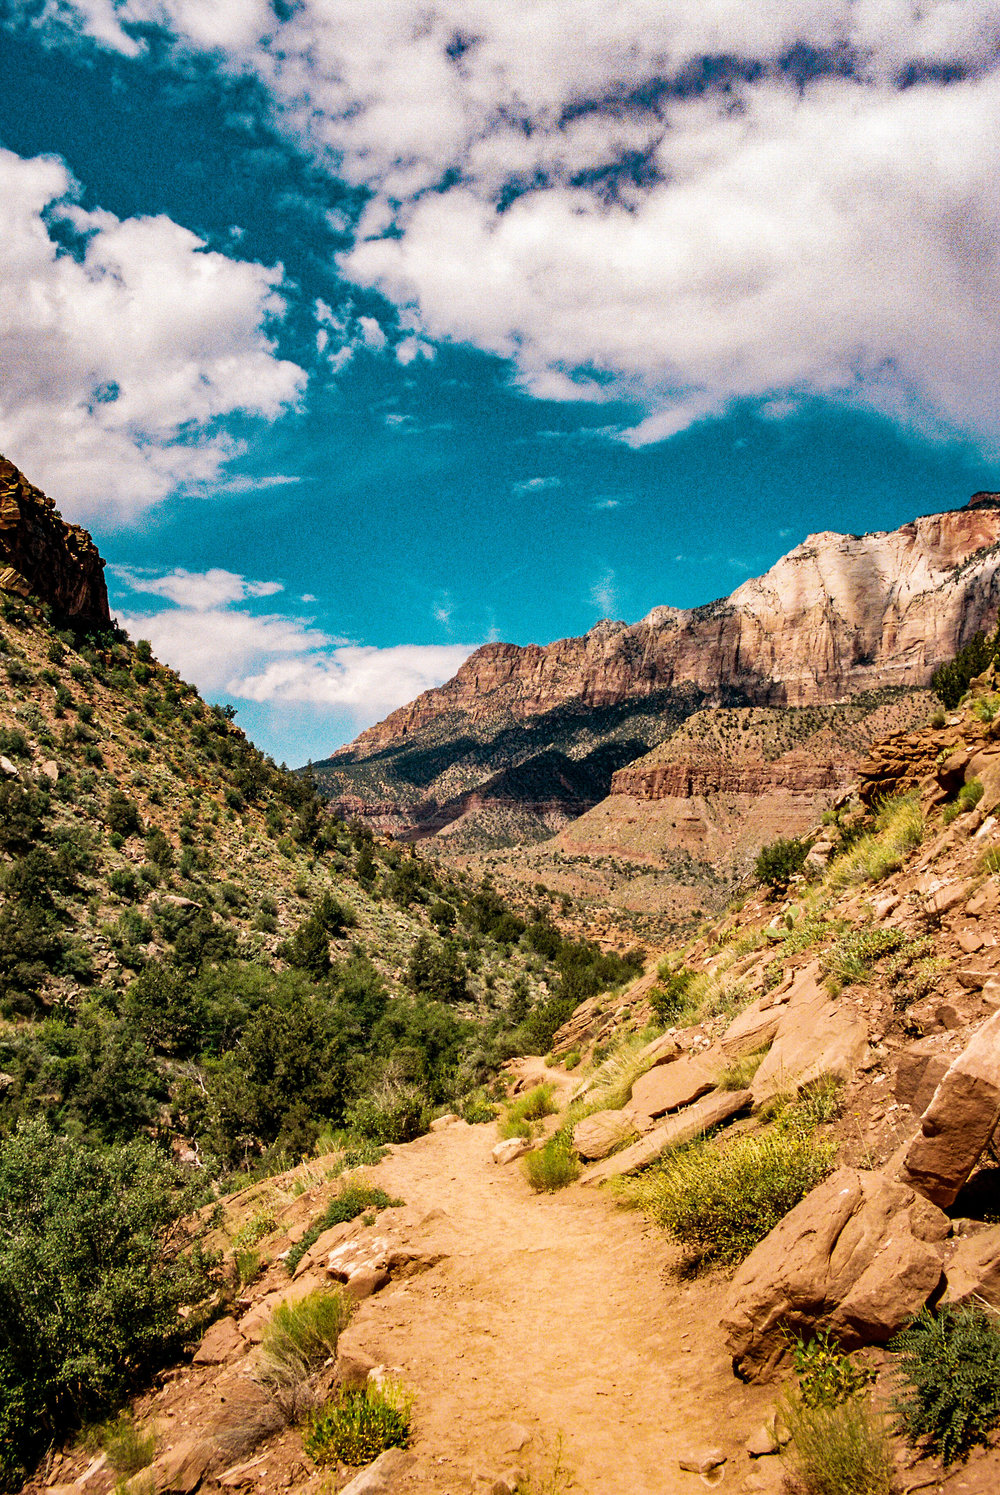 A 35mm film shot of The Watchman Trail